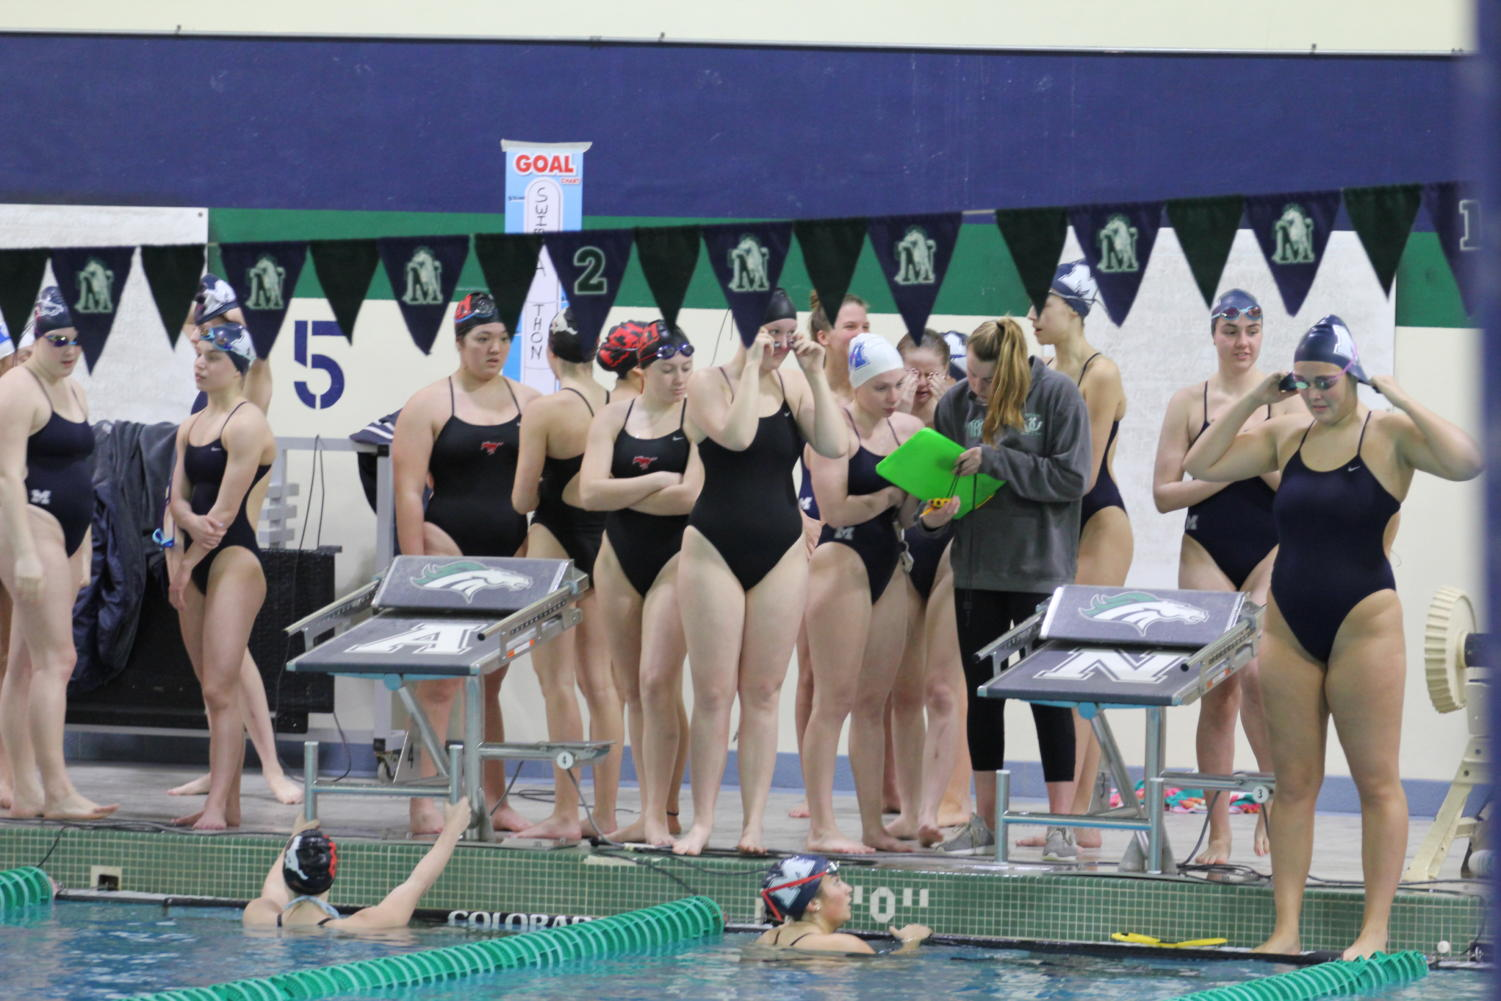 While+Lauren+Berning%2C+senior%2C+prepares+to+swim+a+100-meter+back%2C+Abby+Bomball%2C+junior%2C+shares+the+heat+sheet+of+upcoming+events+with+the+team.+Bomball+was+unable+to+participate+in+this+final+meet+due+to+a+shoulder+injury.+%0A